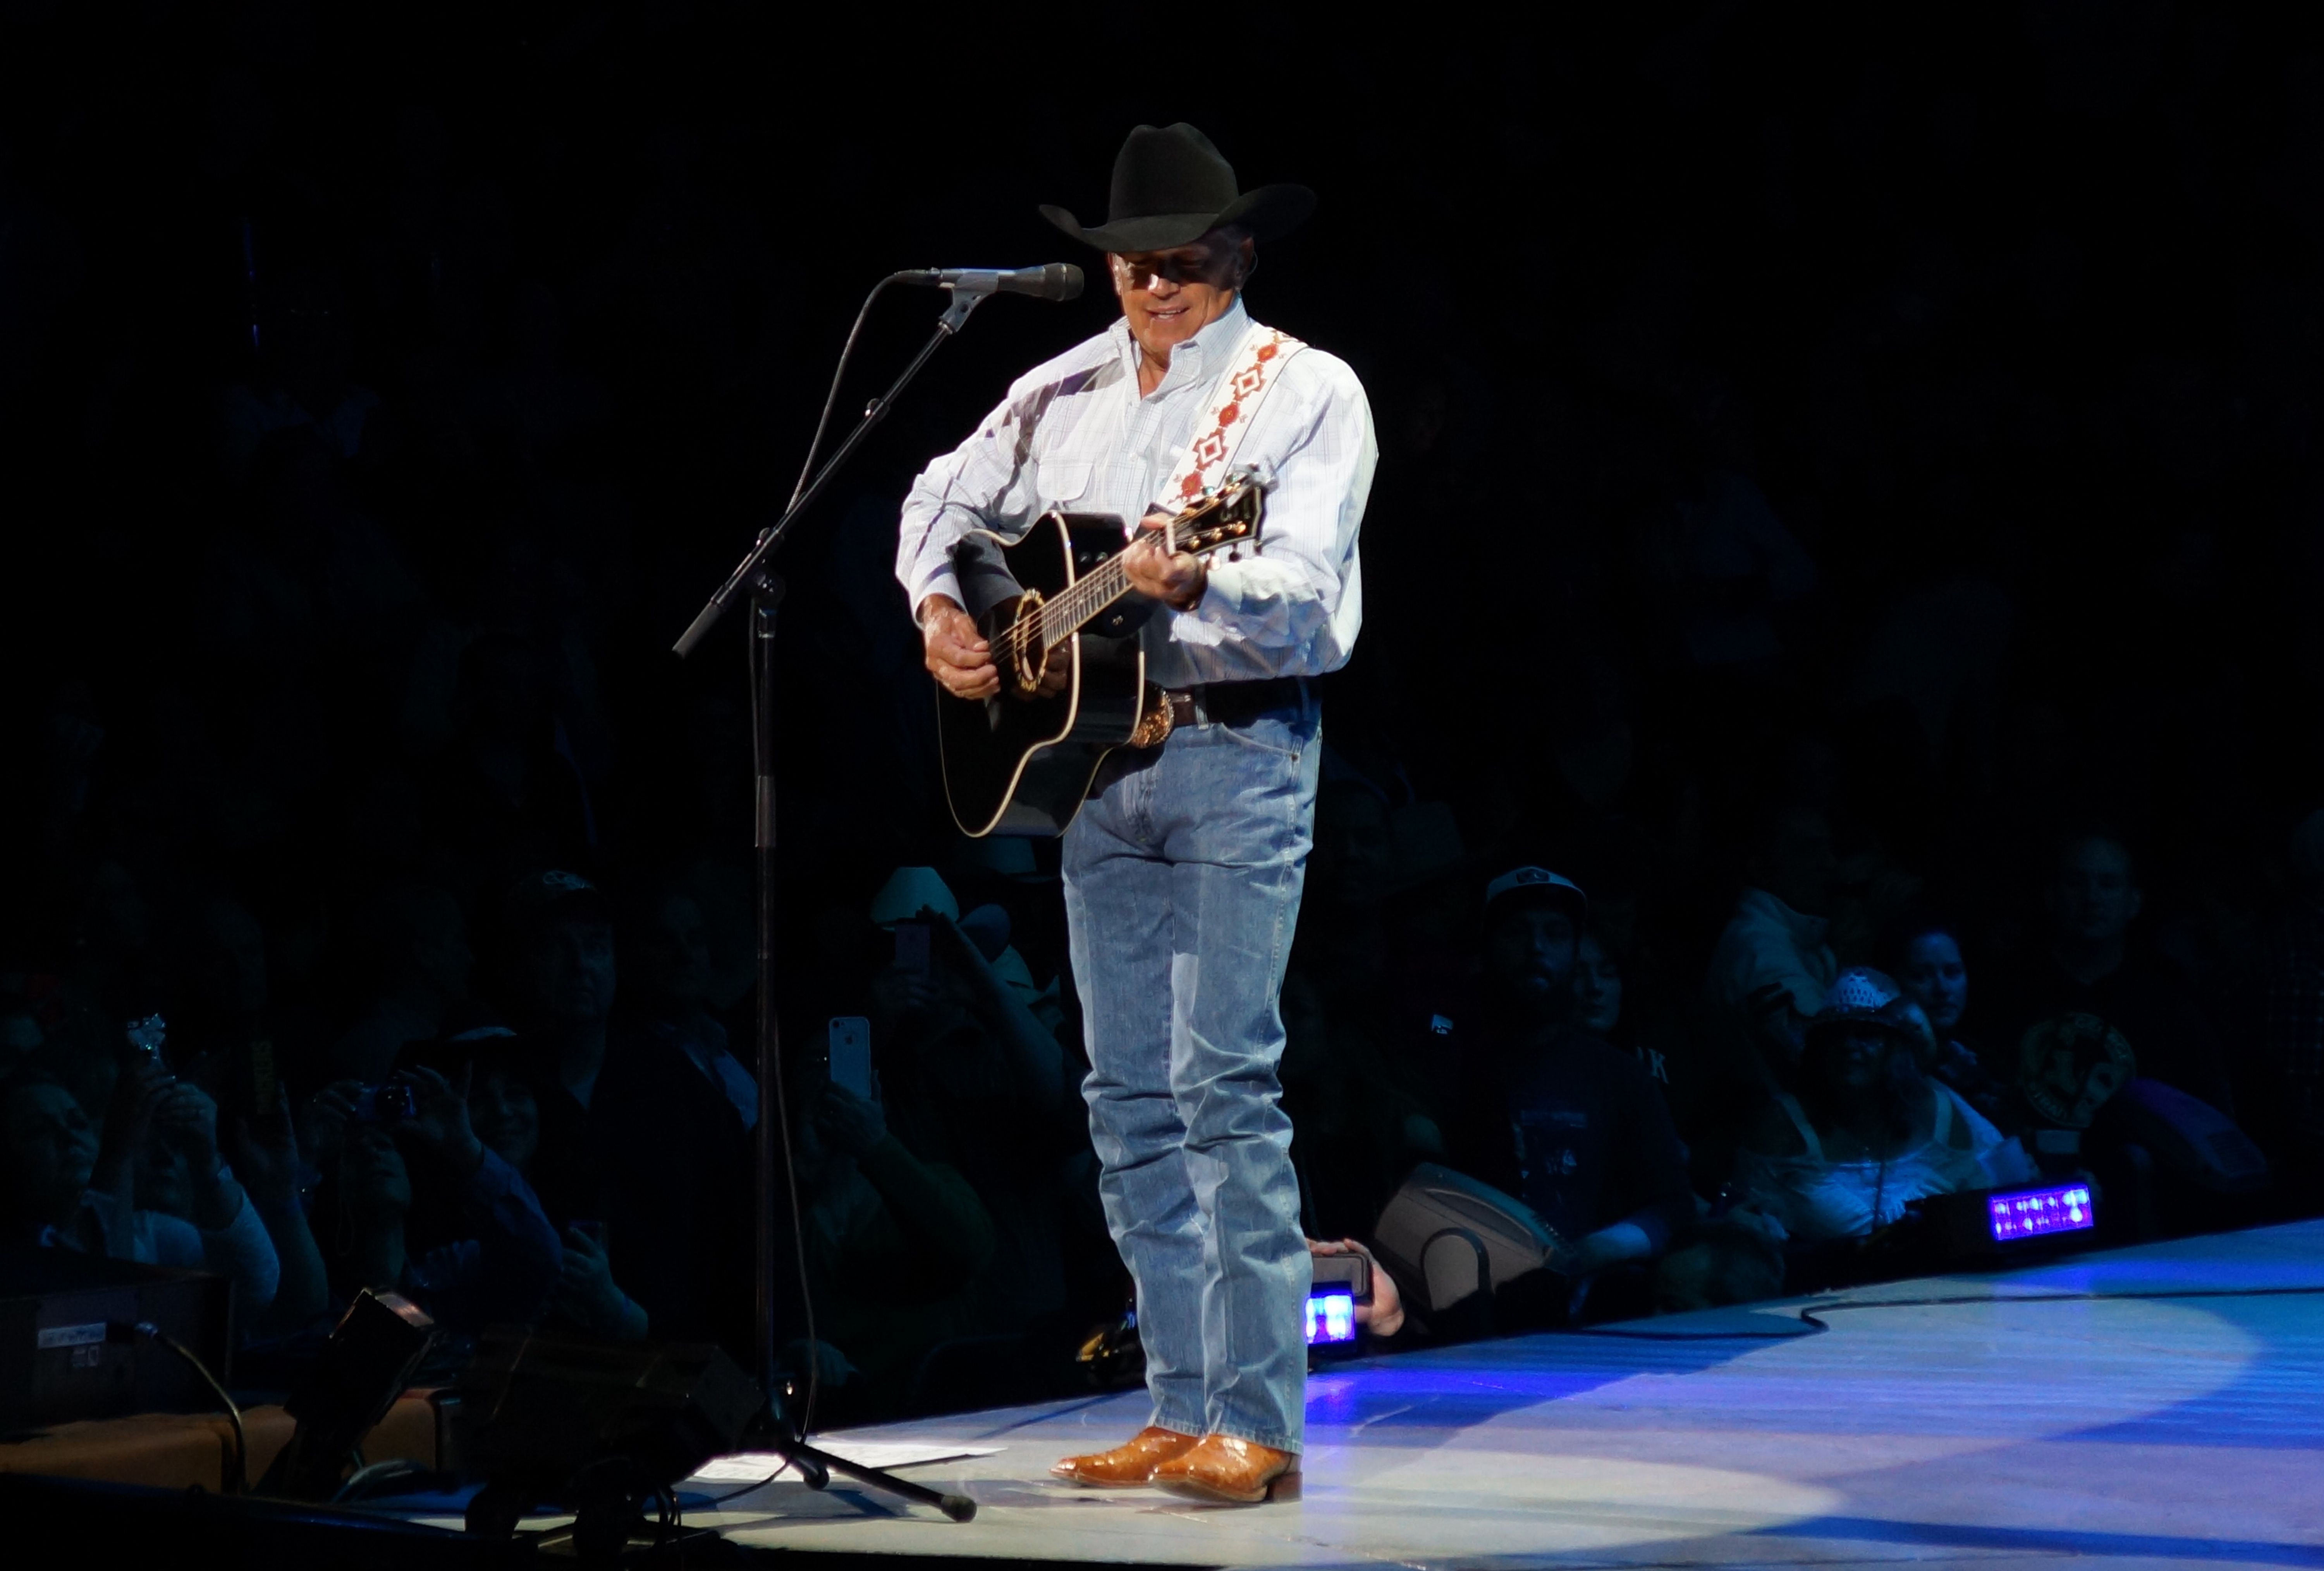 George Strait standing in a spotlight performing on stage.